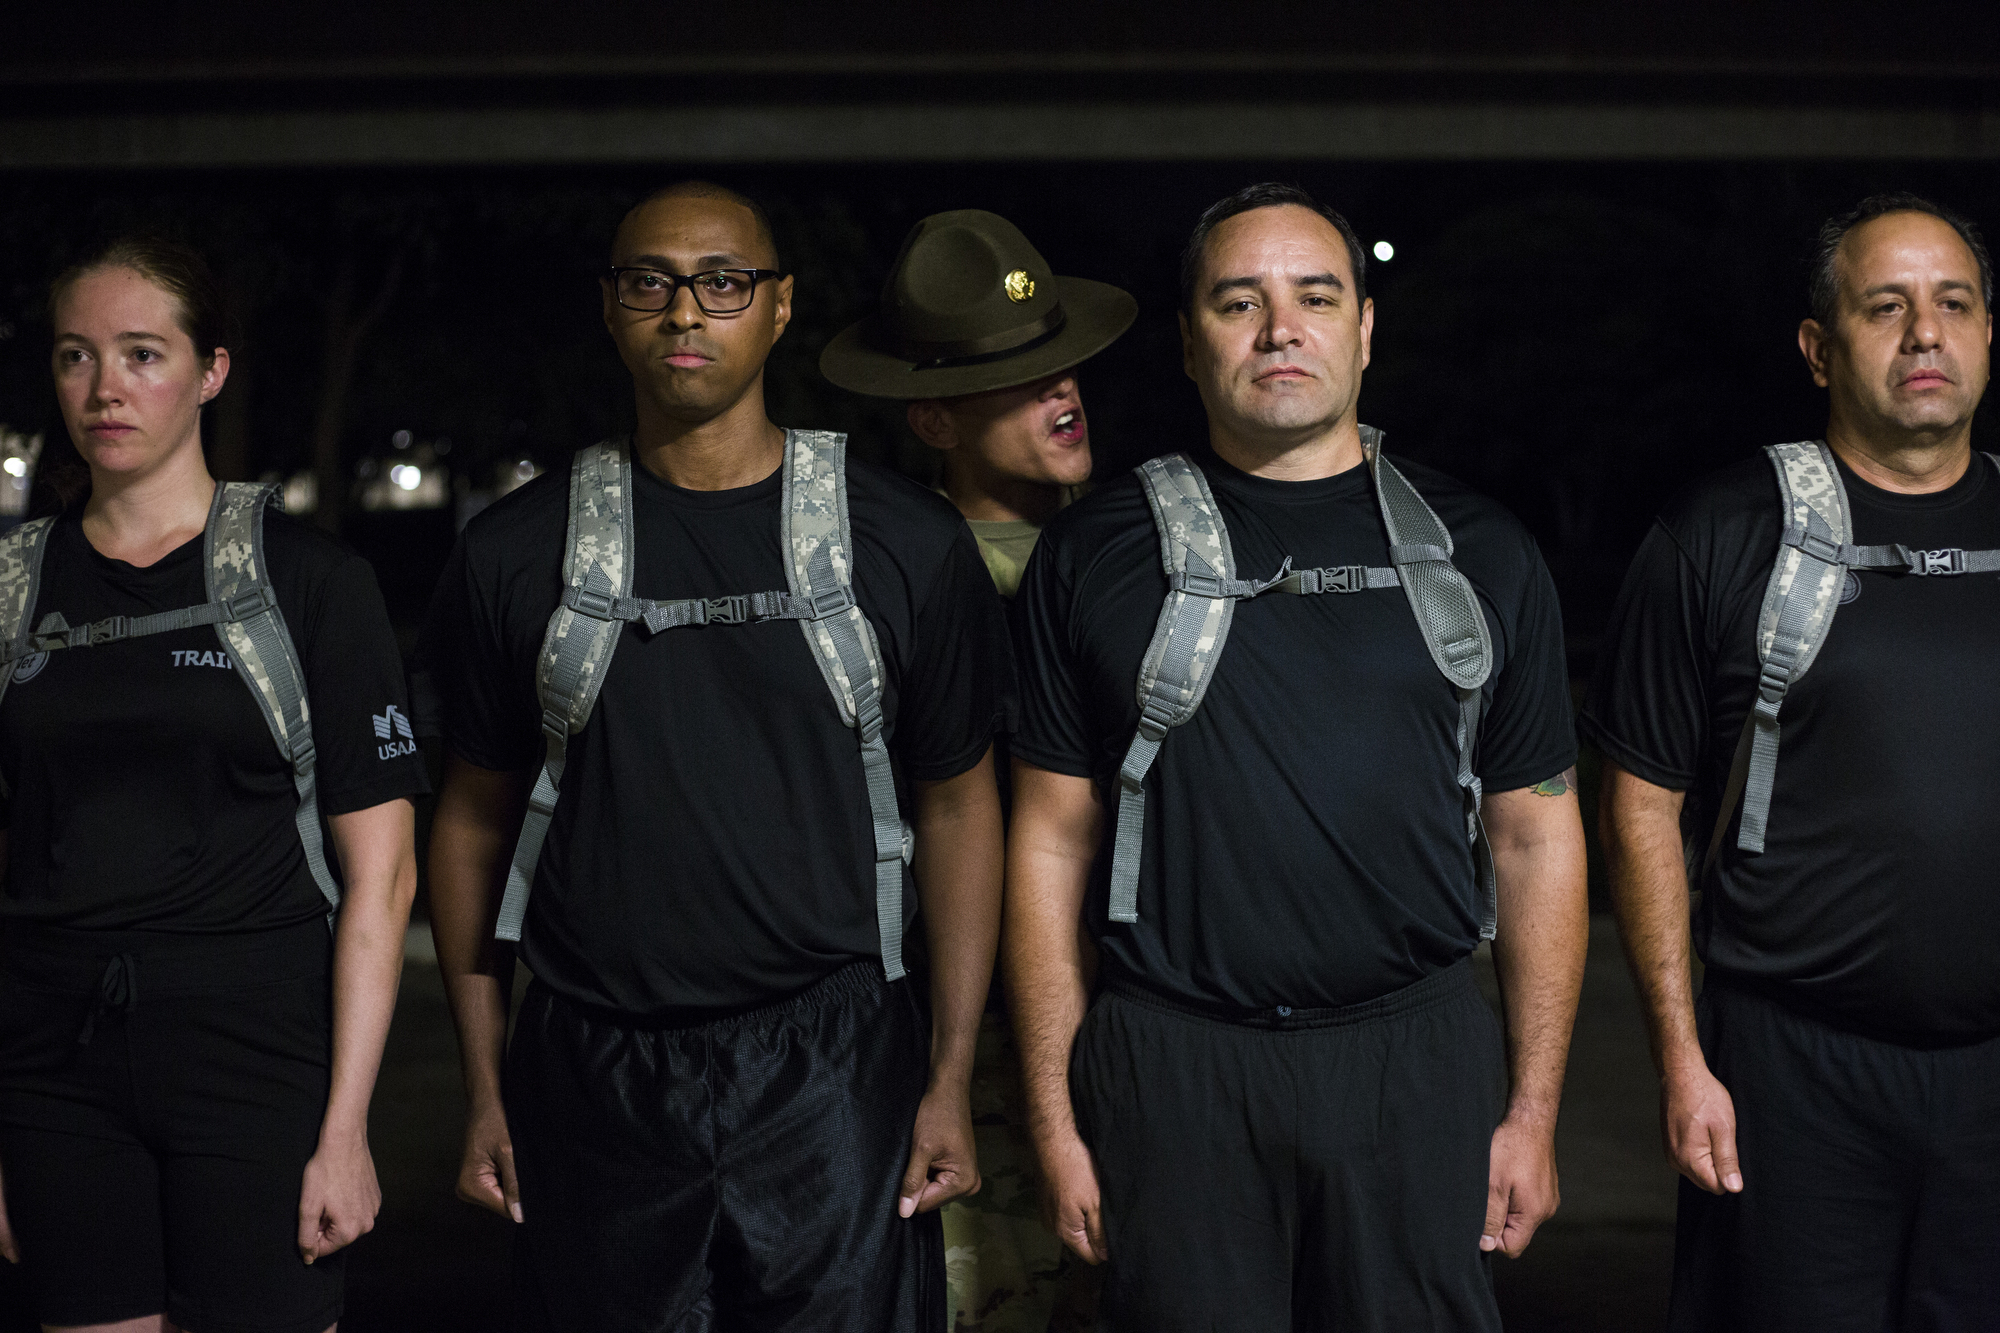 """A drill sergeant puts employees under a """"shark attack"""" simulation, in which military members are yelled at and put under mental pressure, during the USAA Zero Day PT held at USAA's San Antonio head quarters on Friday, July 15, 2016. The bootcamp invited 400 of USAA's employees for a simulation of what military members experience on their first day of basic training."""